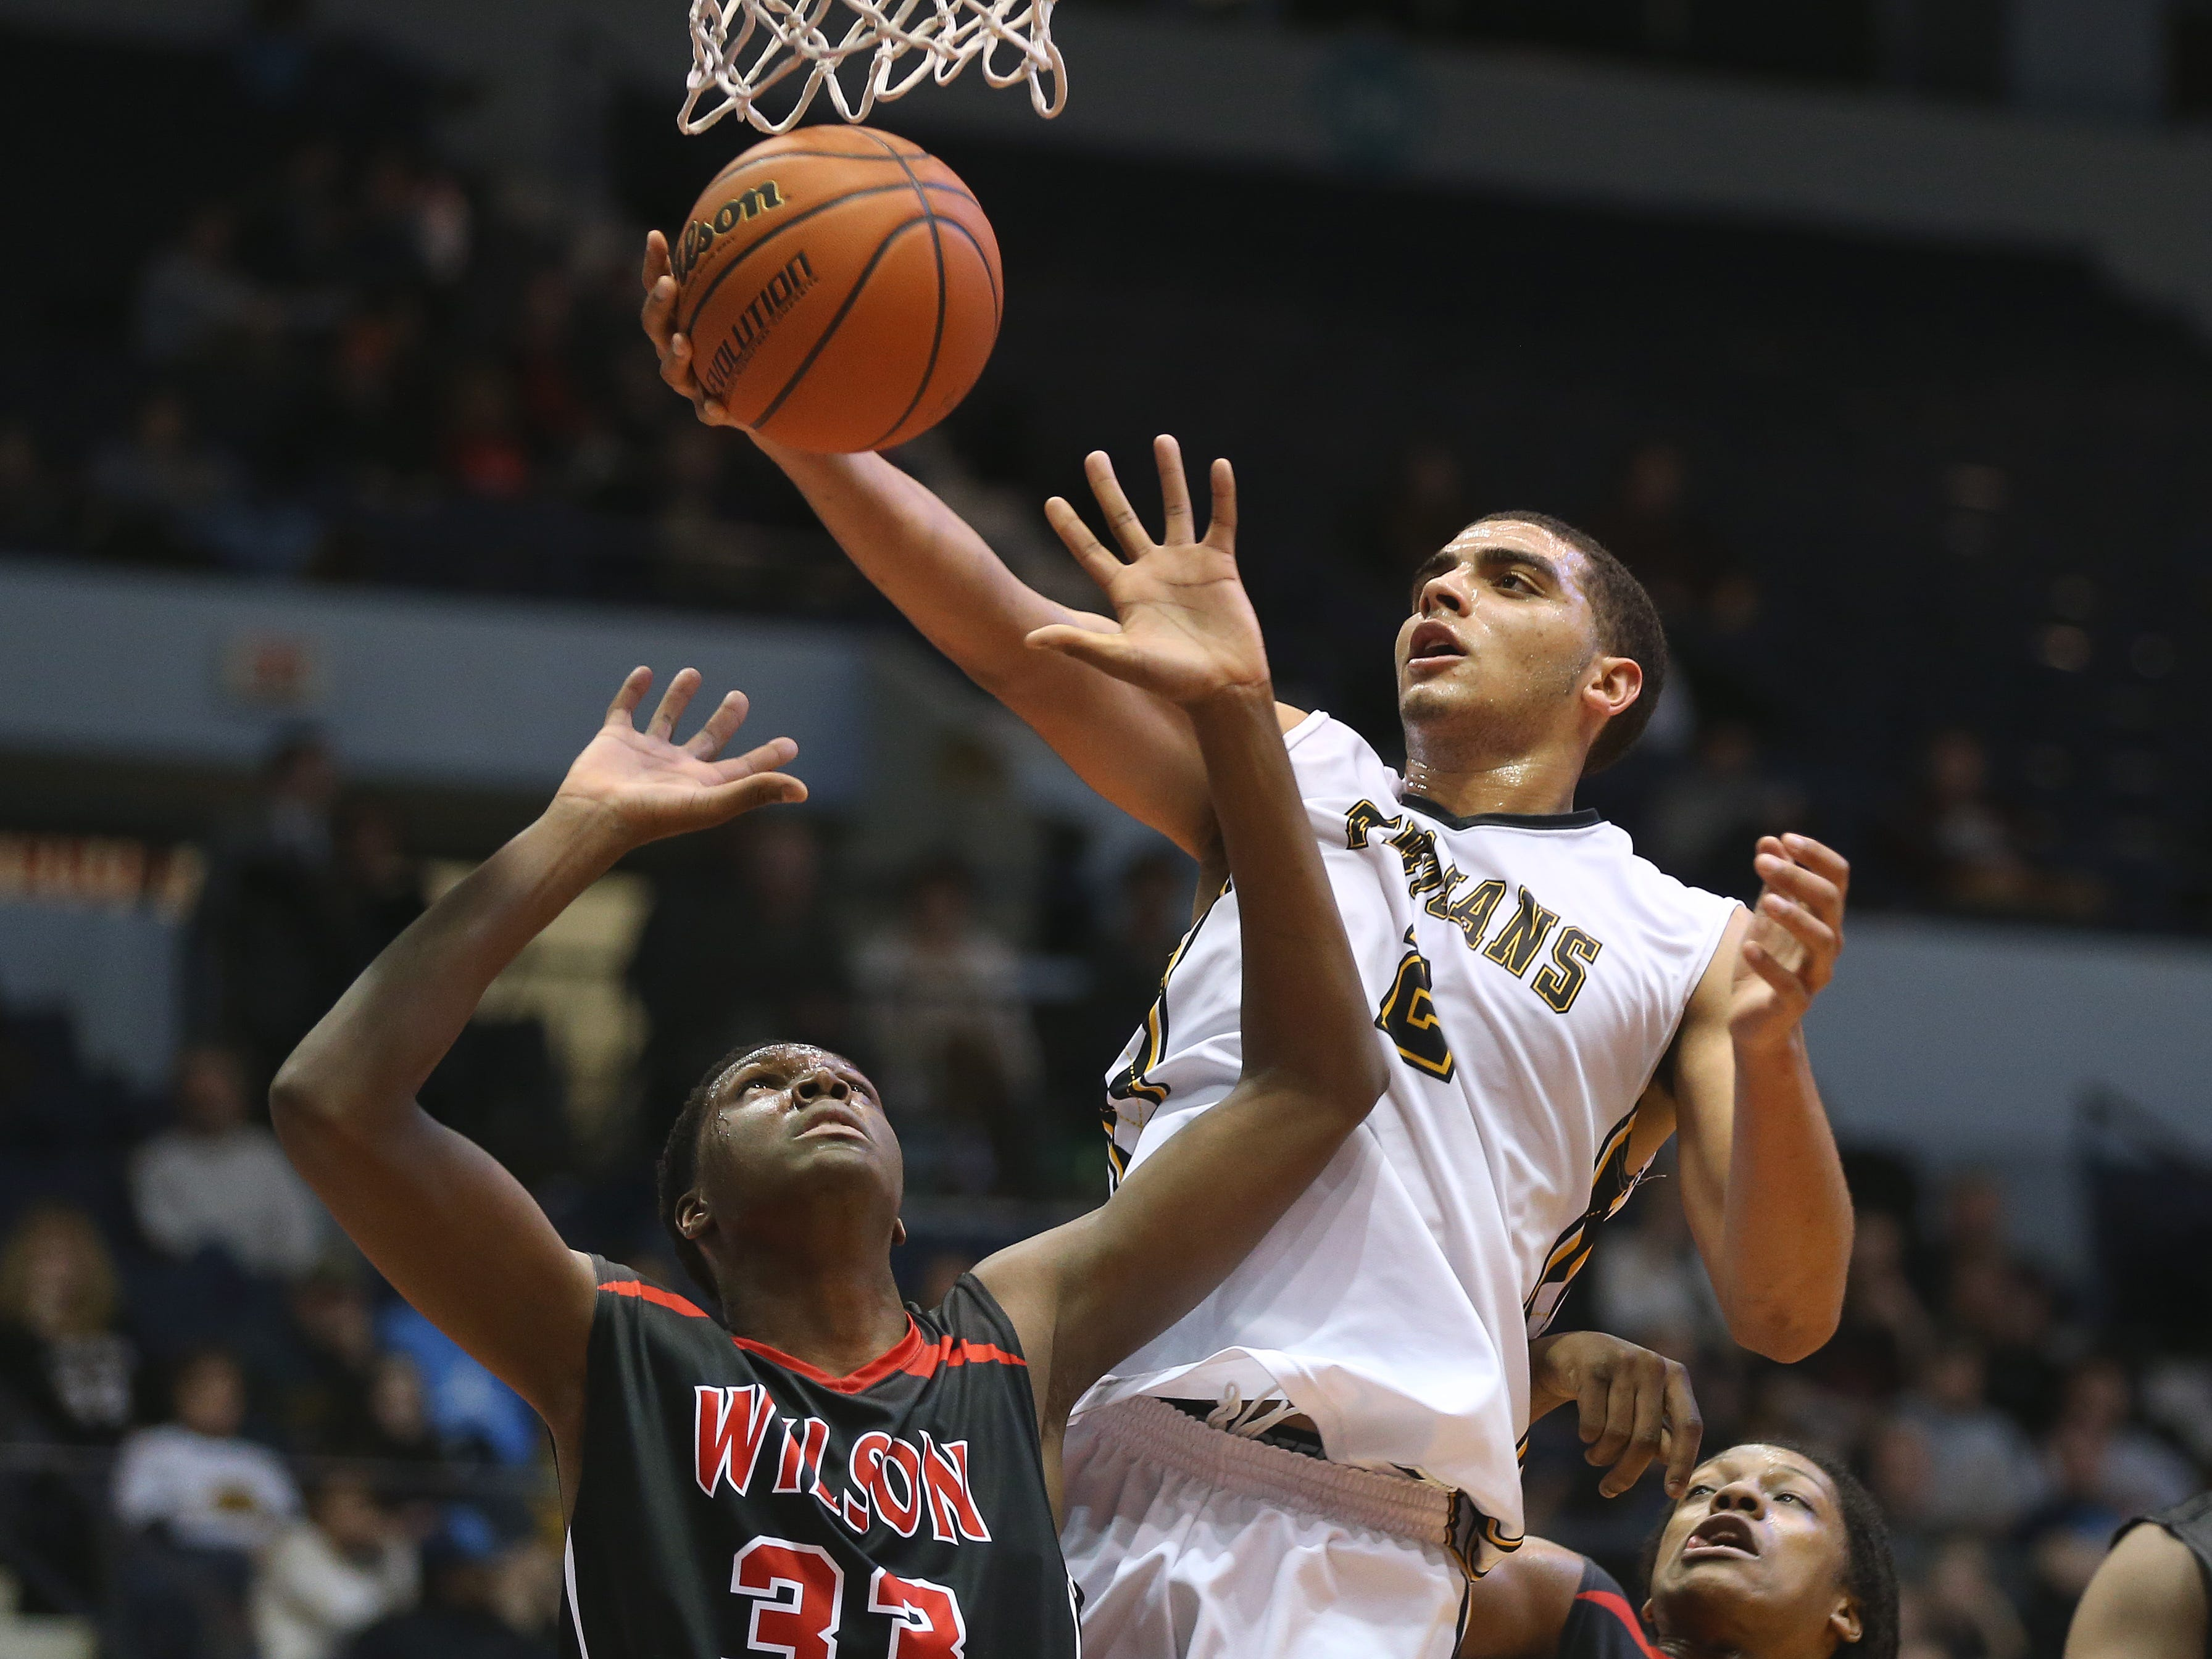 Athena's Anthony Lamb (2) pulls in a rebound over Wilson's Deandre Adullah (33).